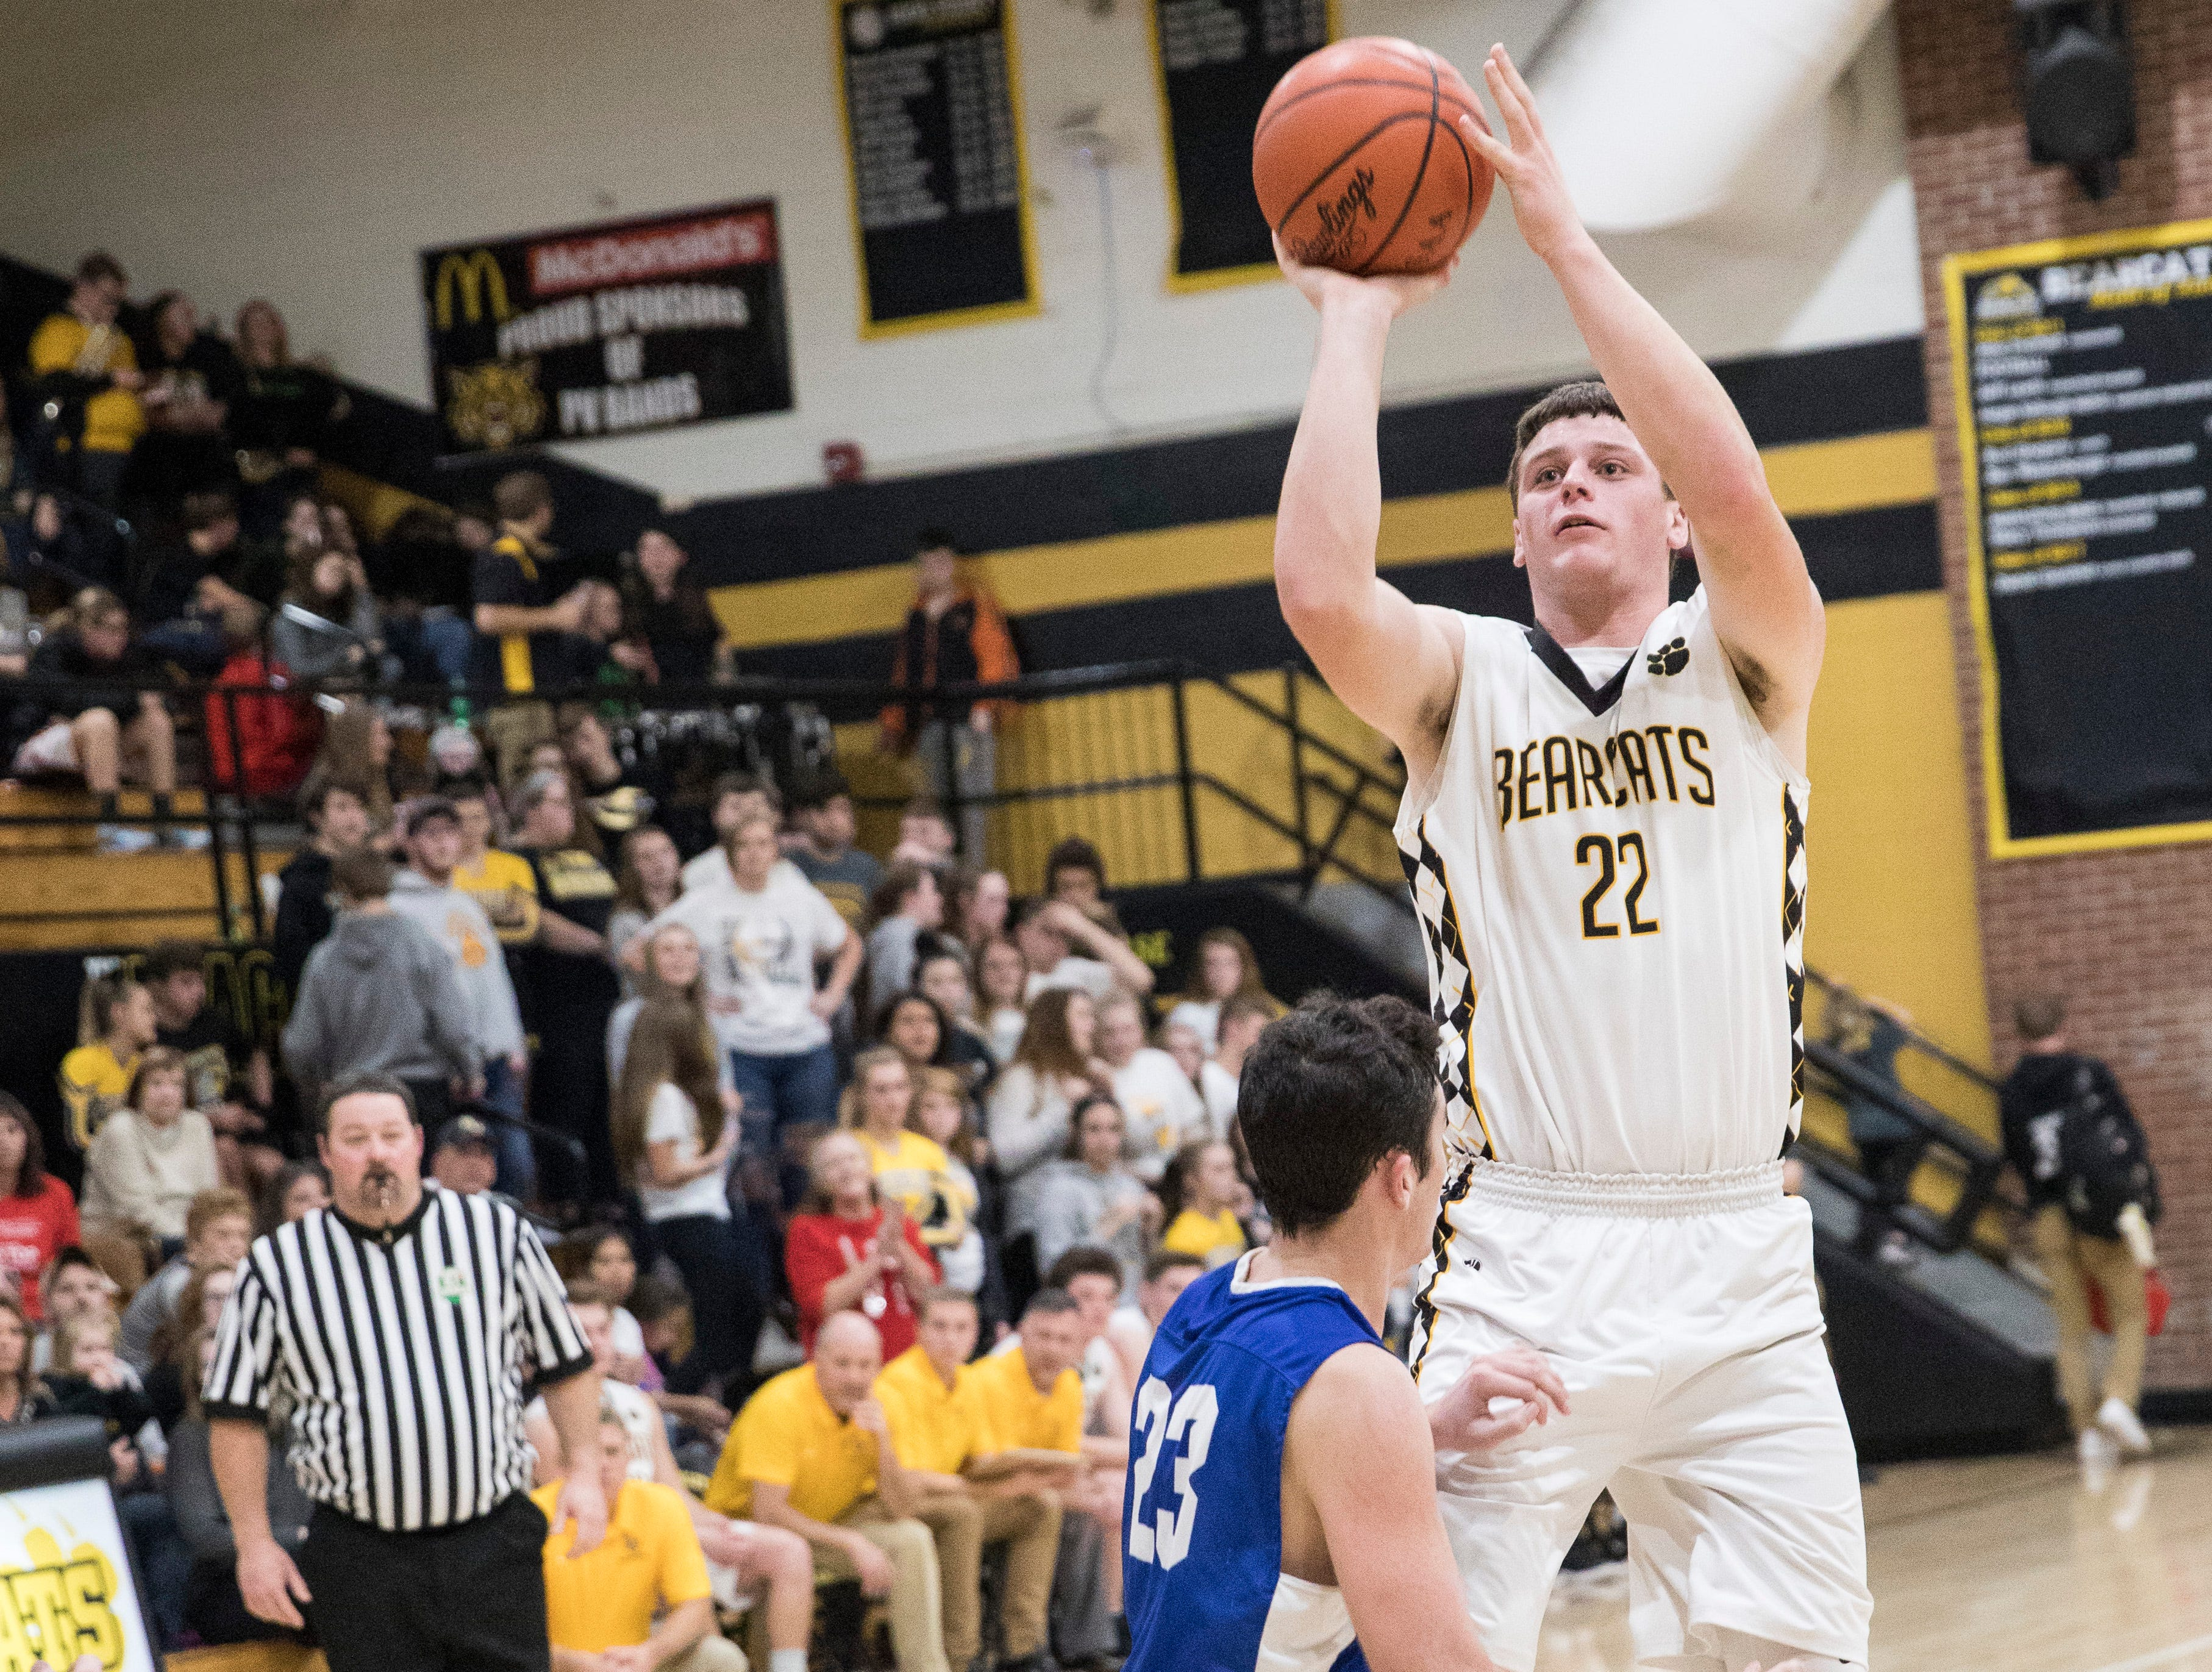 Forward Bryce Newland makes a jump shot to score for Paint Valley during the first half of their game against Southeastern Friday night in Bainbridge, Ohio. Paint Valley defeated Southeastern 60-55.